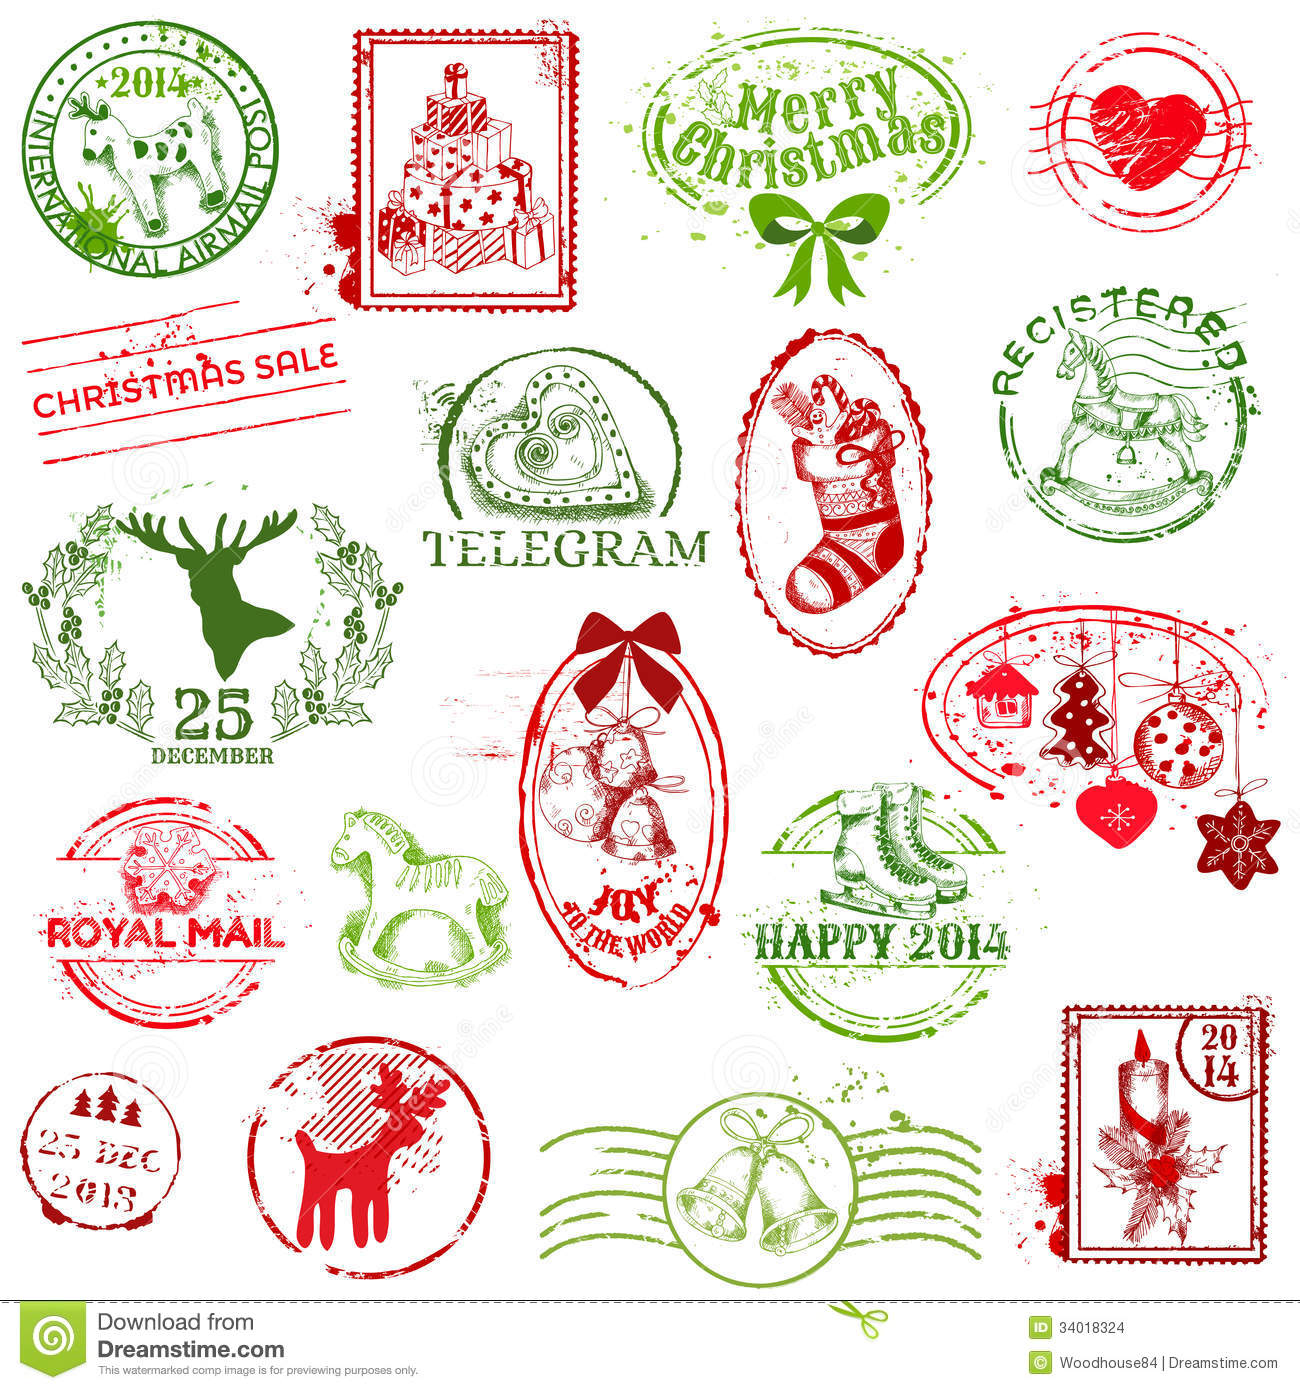 Christmas Invitation Designs with amazing invitation layout